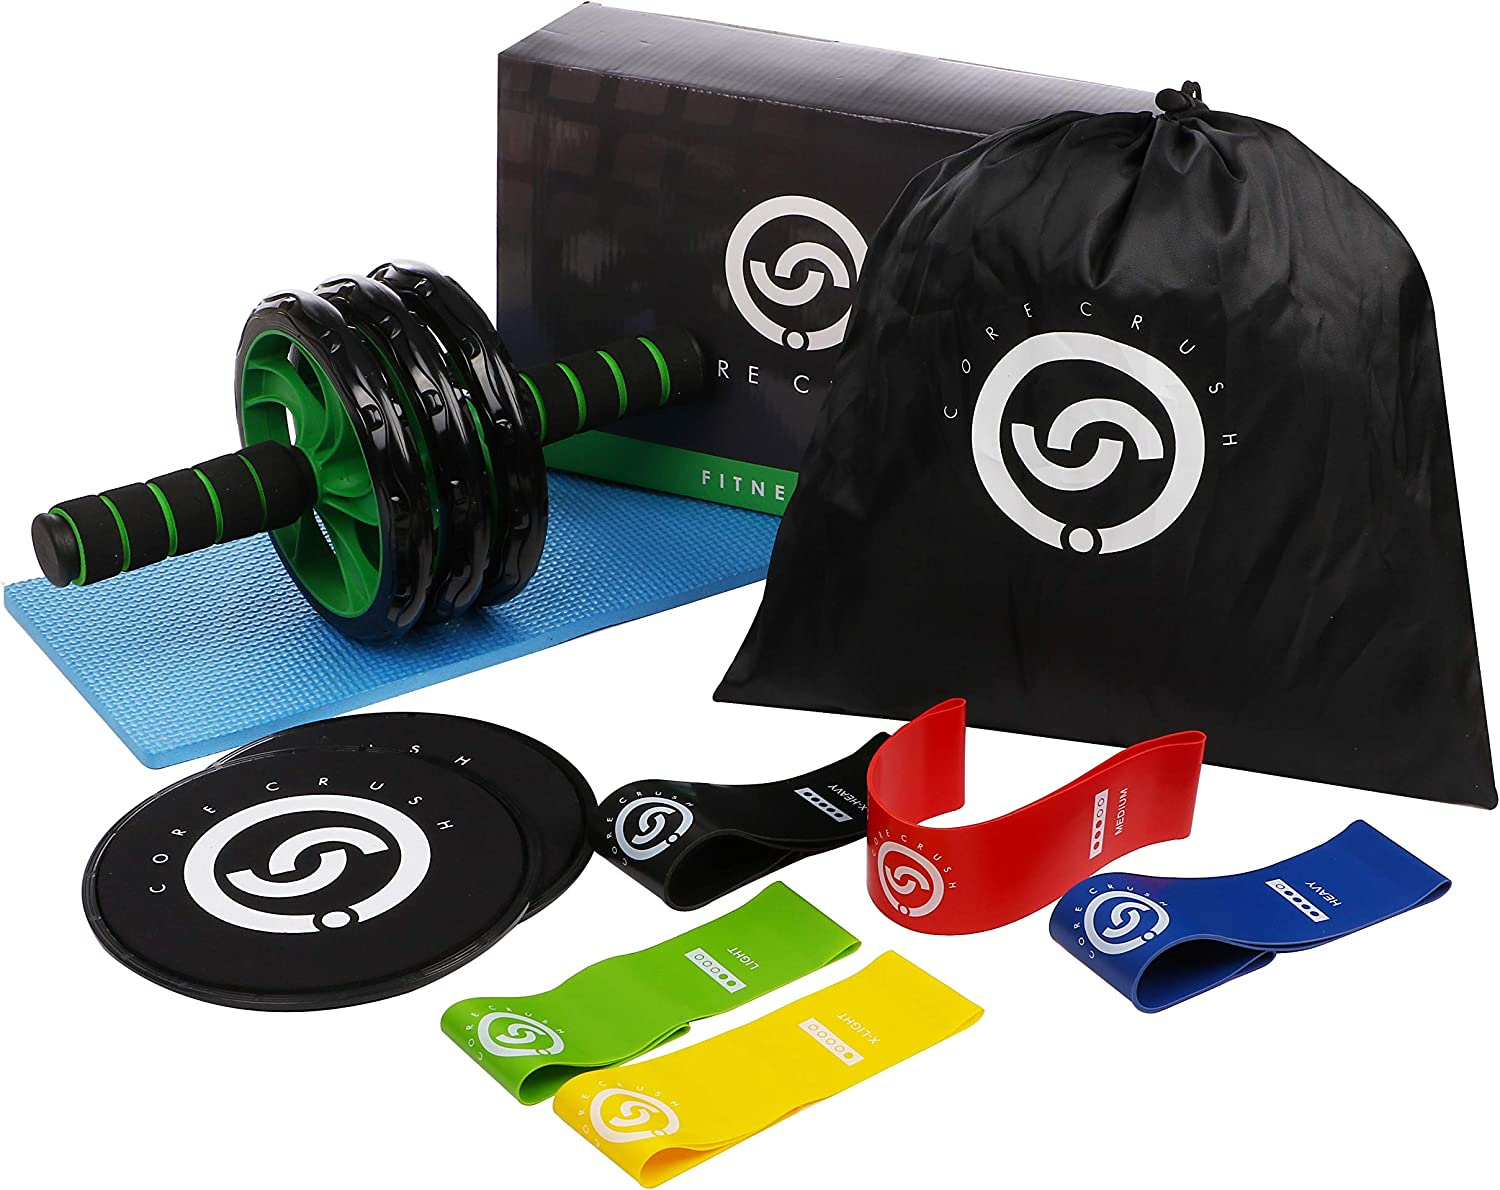 Core Crush Exercise Equipment Fitness Kit – 5 Resistance Bands, 2 Core Disc Sliders, Ab Roller Wheel, Knee Pad Carry Bag